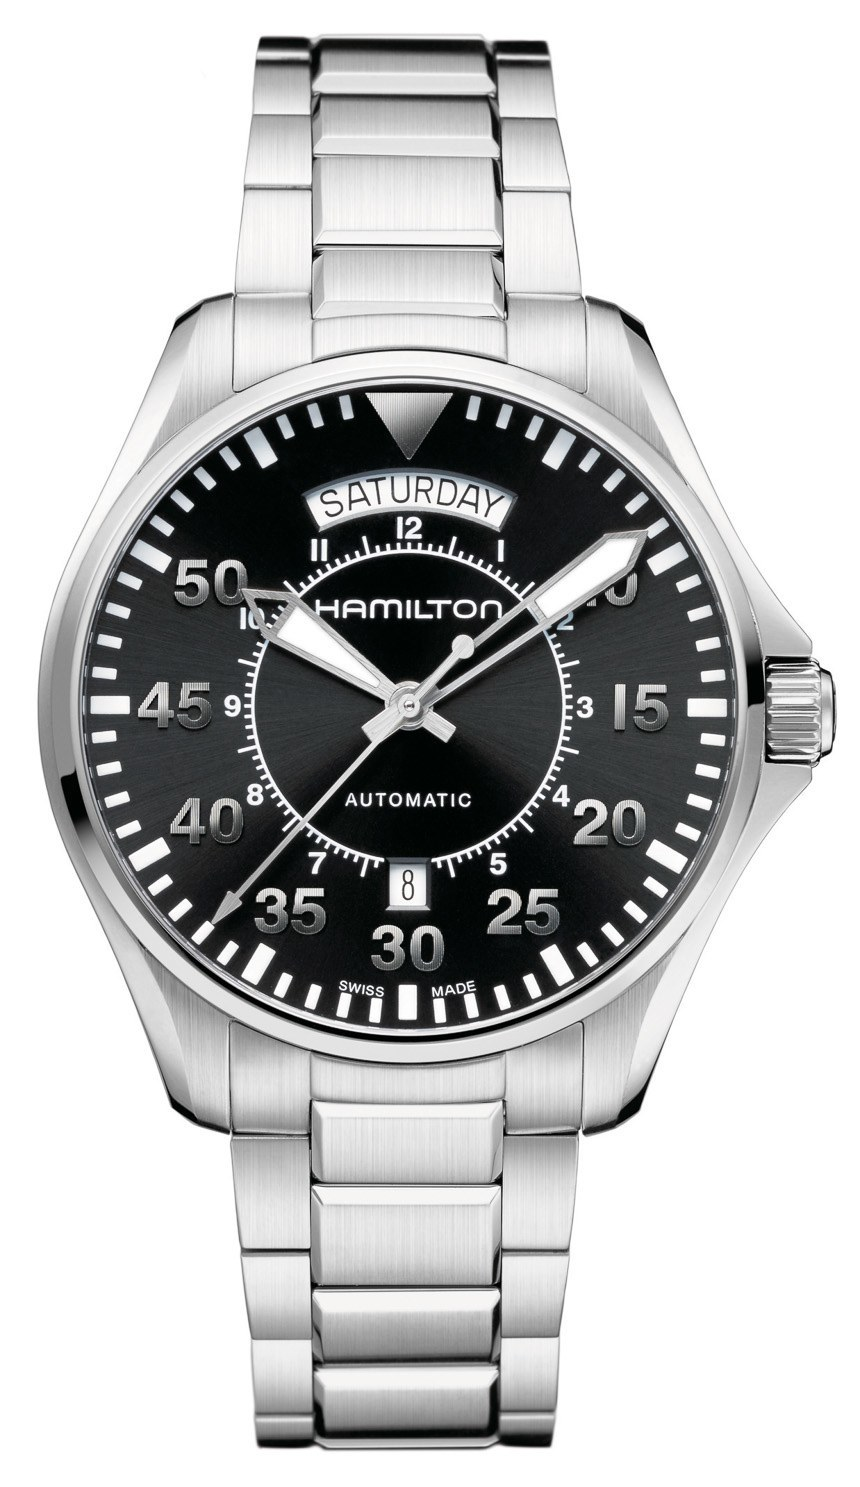 Hamilton Khaki Pilot Automatic Review – The Hamilton Interstellar Watch